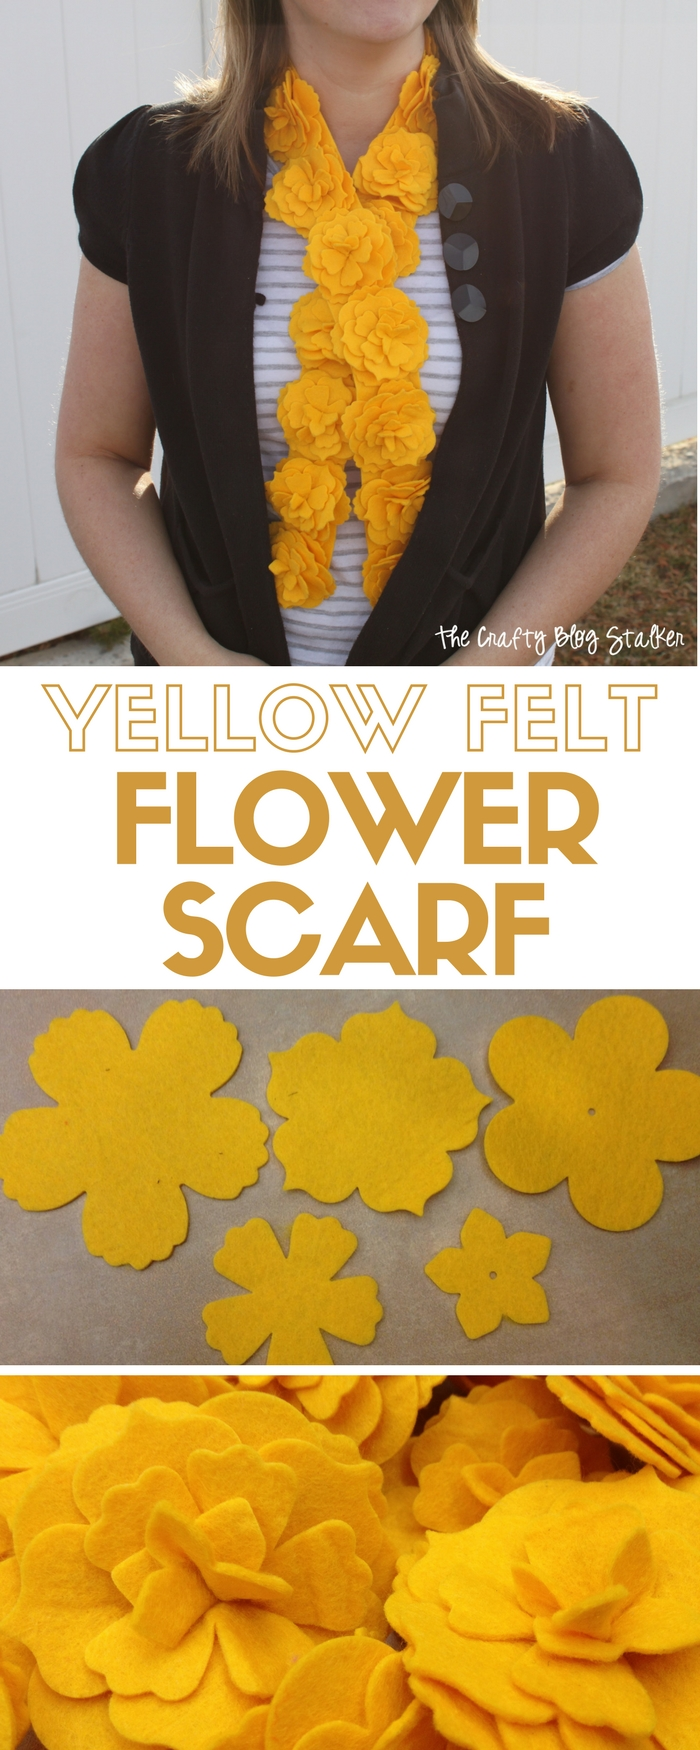 Make your own Felt Flower Scarf using a Sizzix Big Shot. DIY craft tutorial includes easy to follow instructions for a fashion accessory that your style!